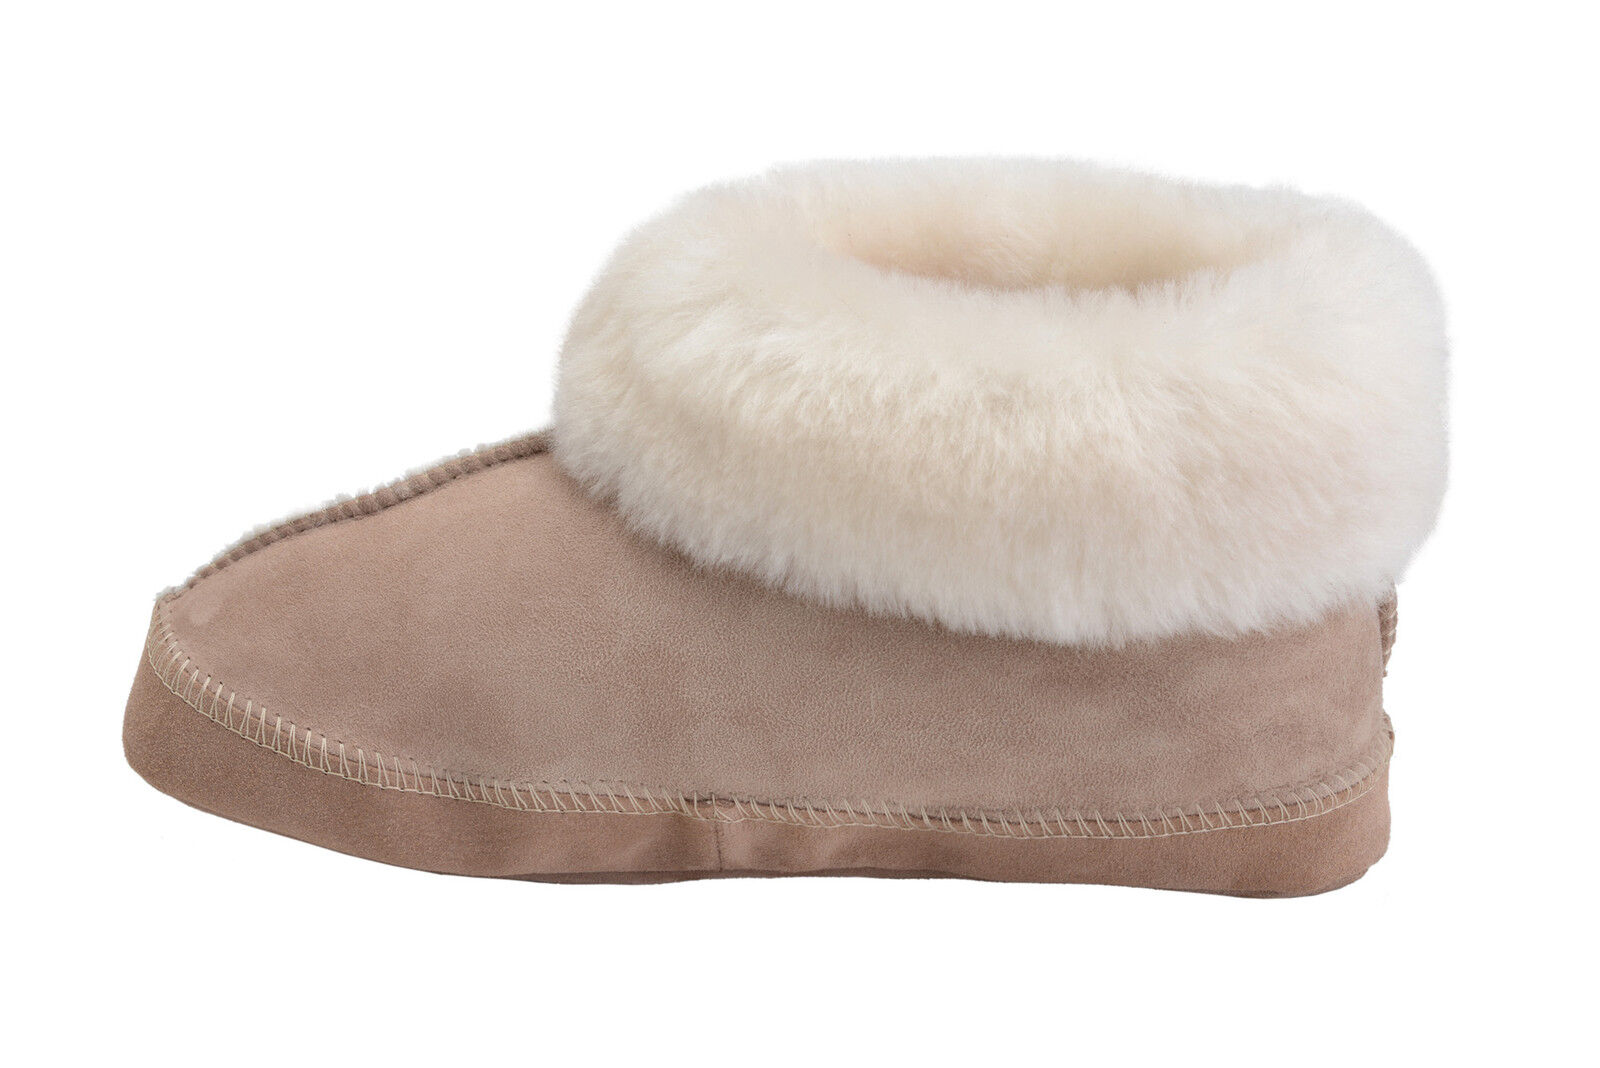 Mujer / Hombre Leather Slippers Warm Zapatos Botas Sheep Wool Sheepskin Zapatos Warm All Talla 6b492d